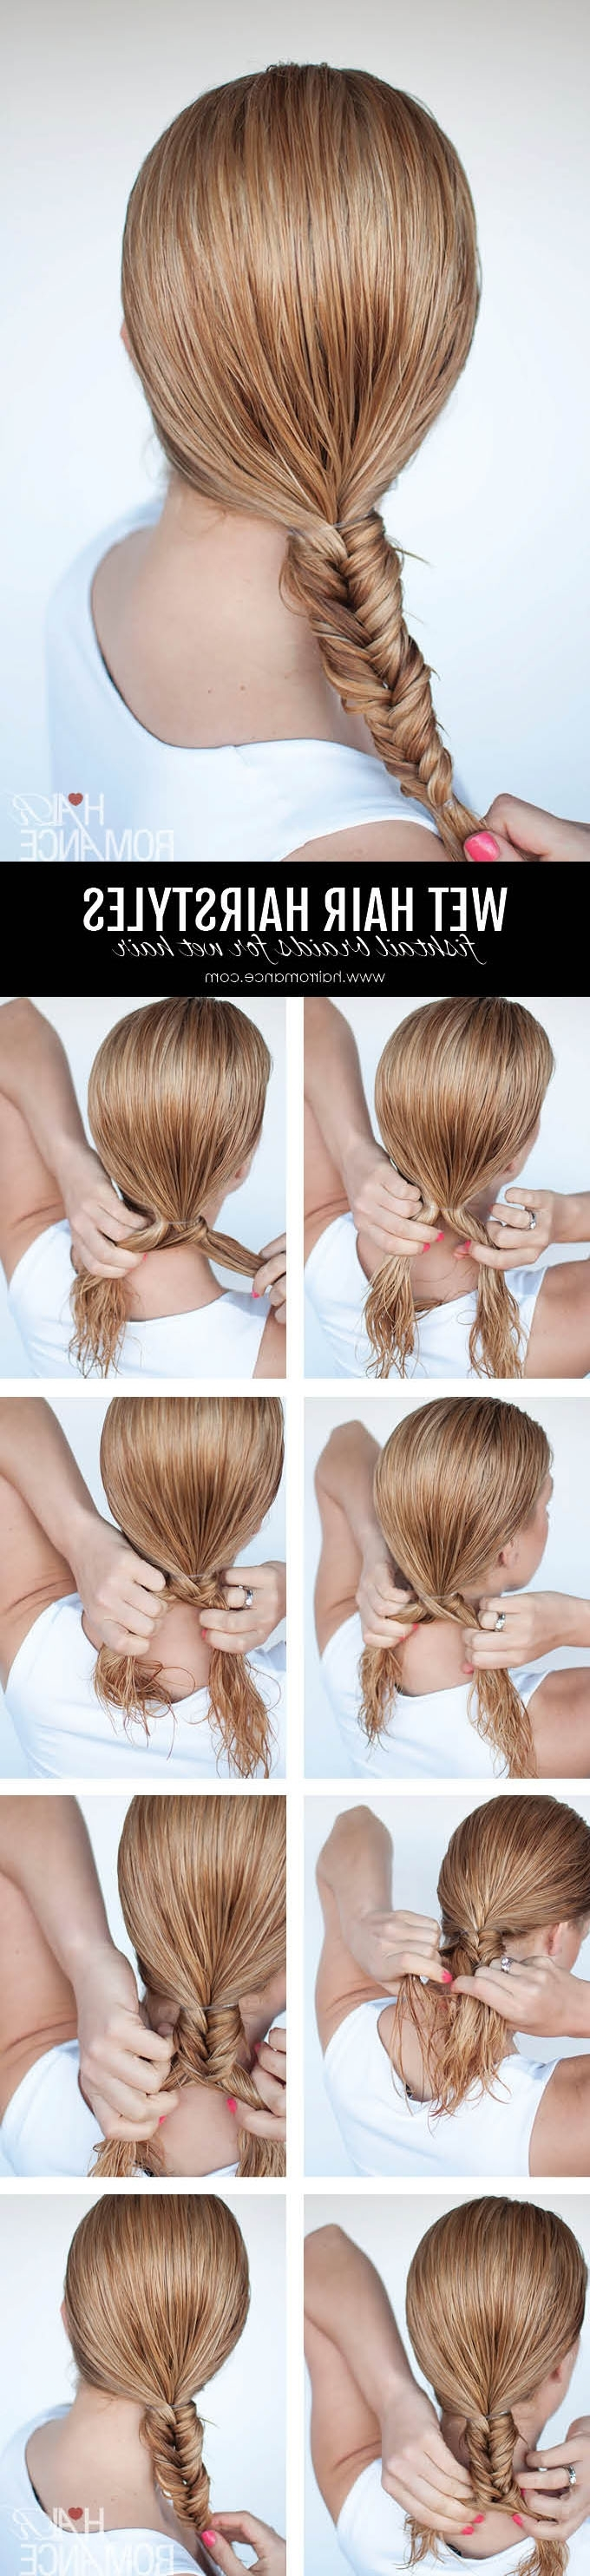 Hairstyles For Wet Hair: 3 Simple Braid Tutorials You Can Wear In Pertaining To Wet Hair Updo Hairstyles (View 12 of 15)